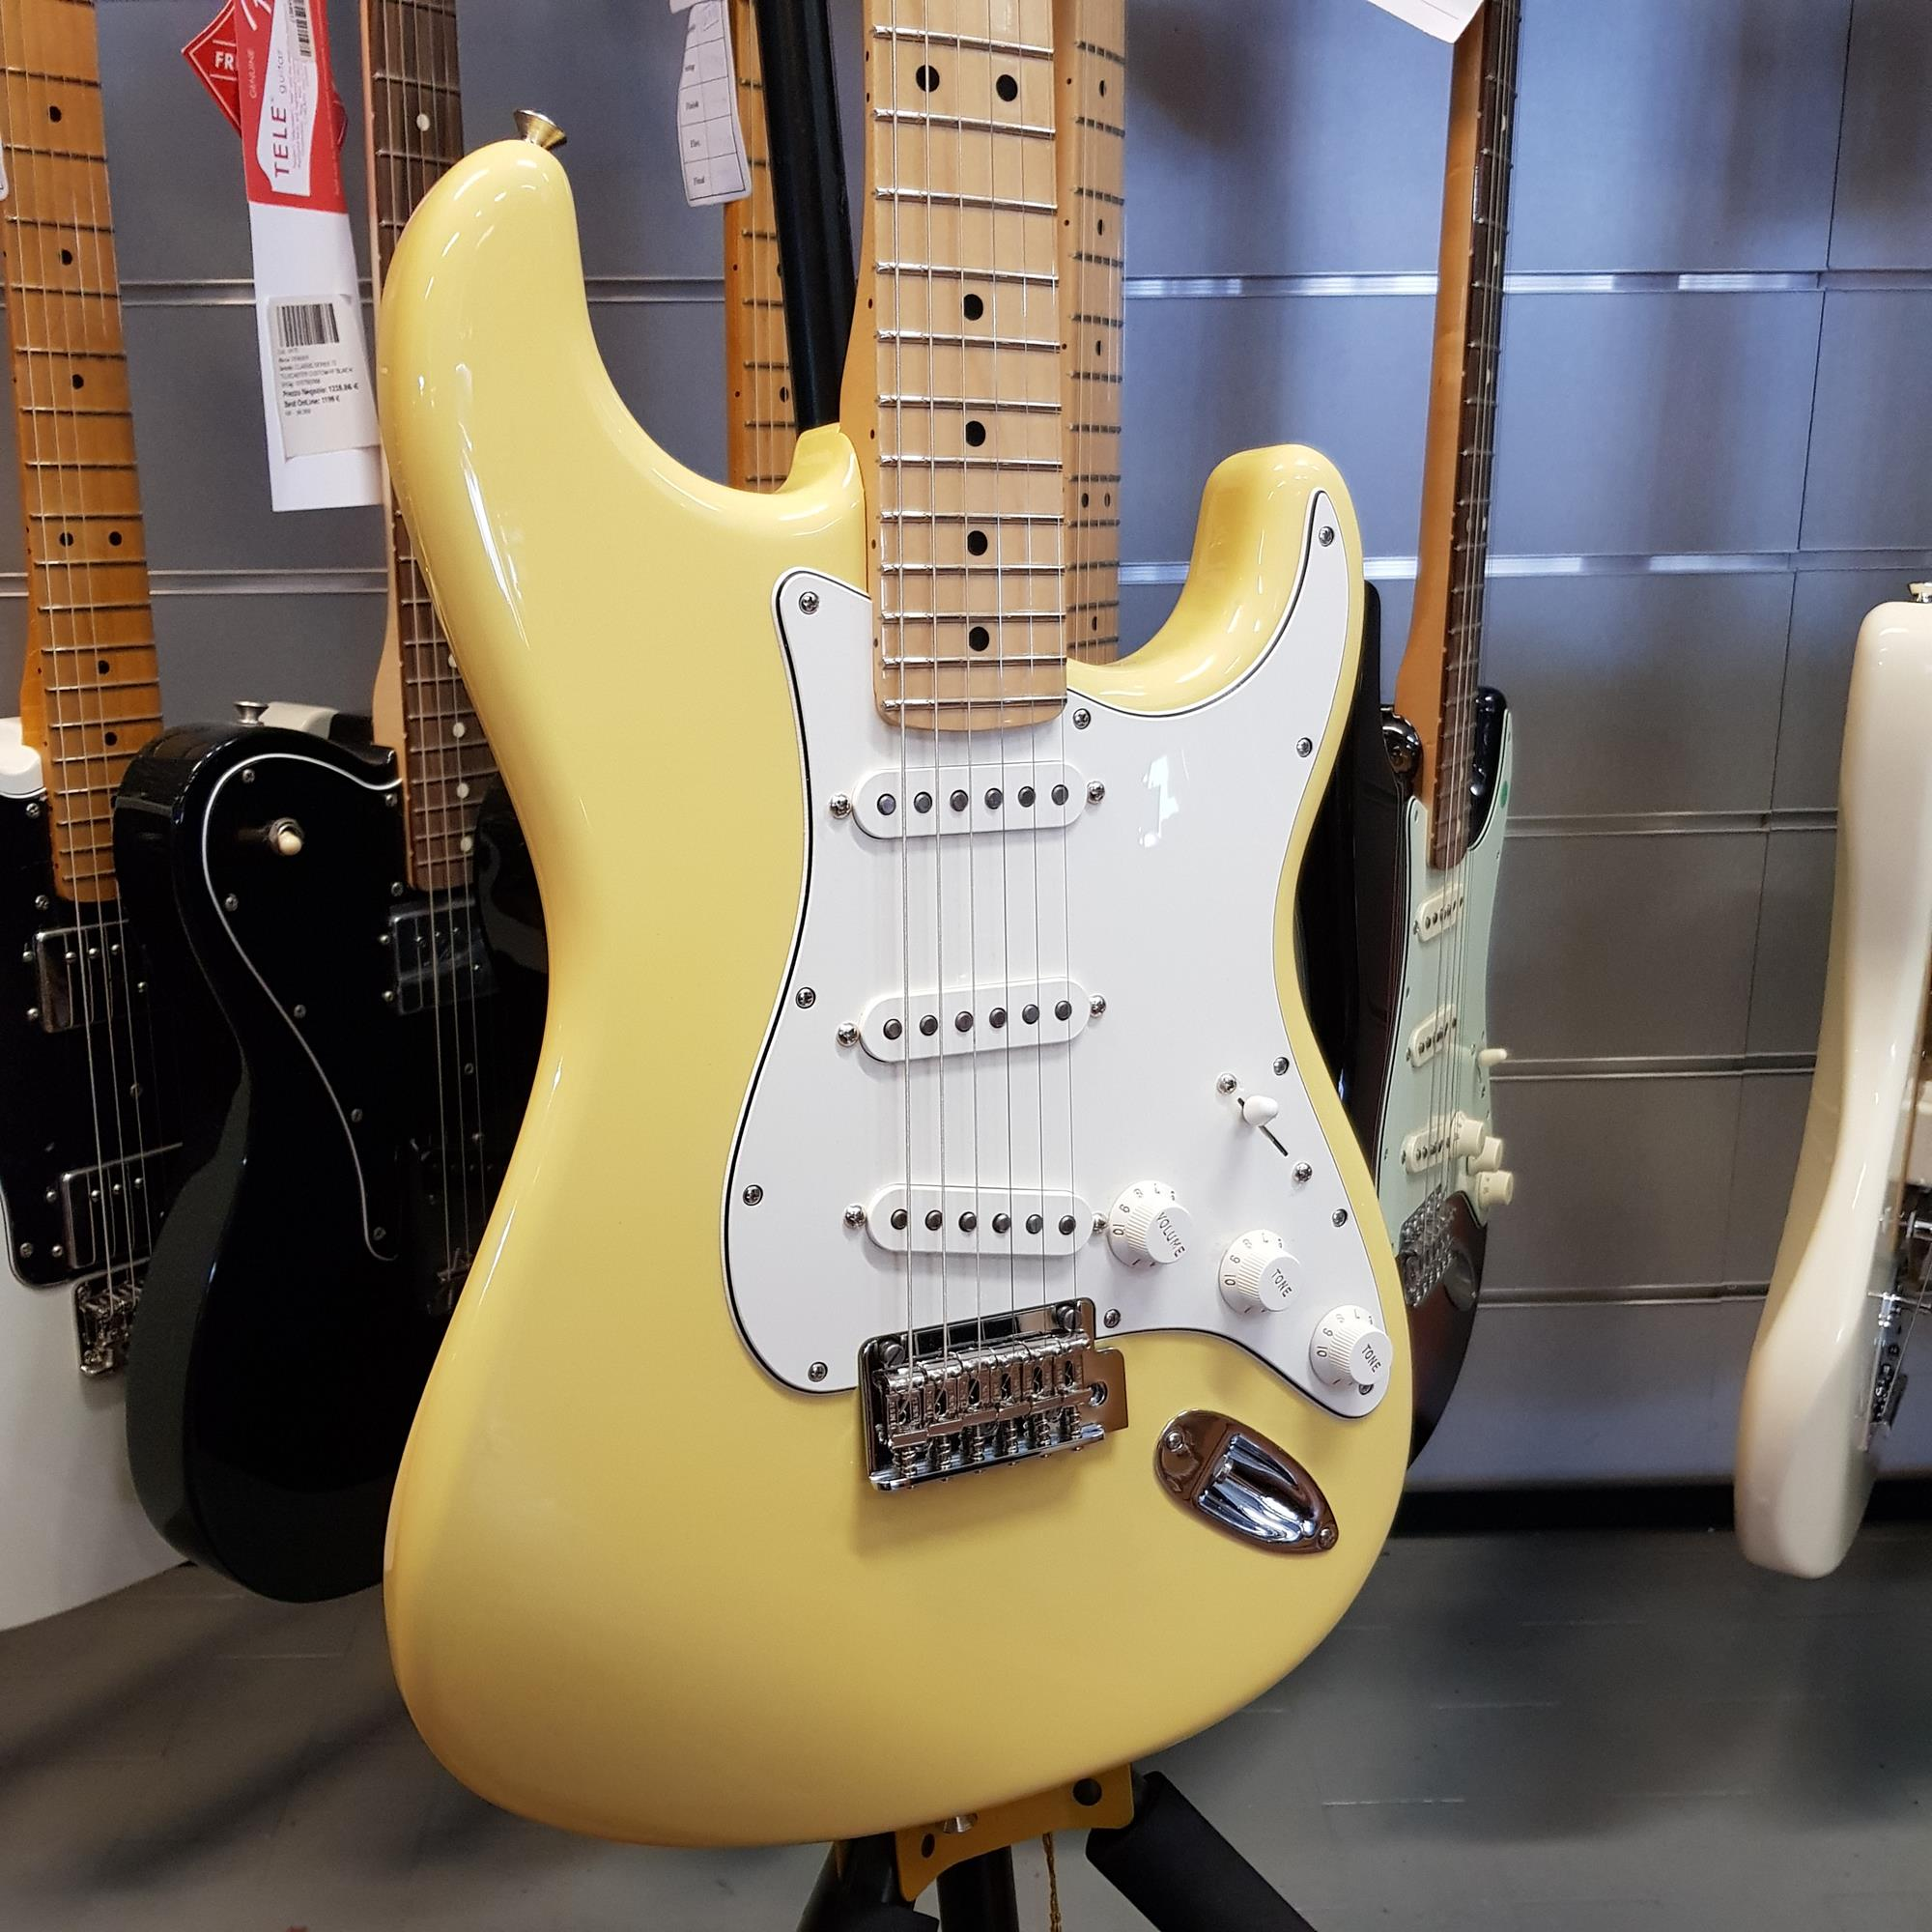 FENDER-STRATOCASTER-PLAYER-BUTTERCREAM-sku-1596811274709